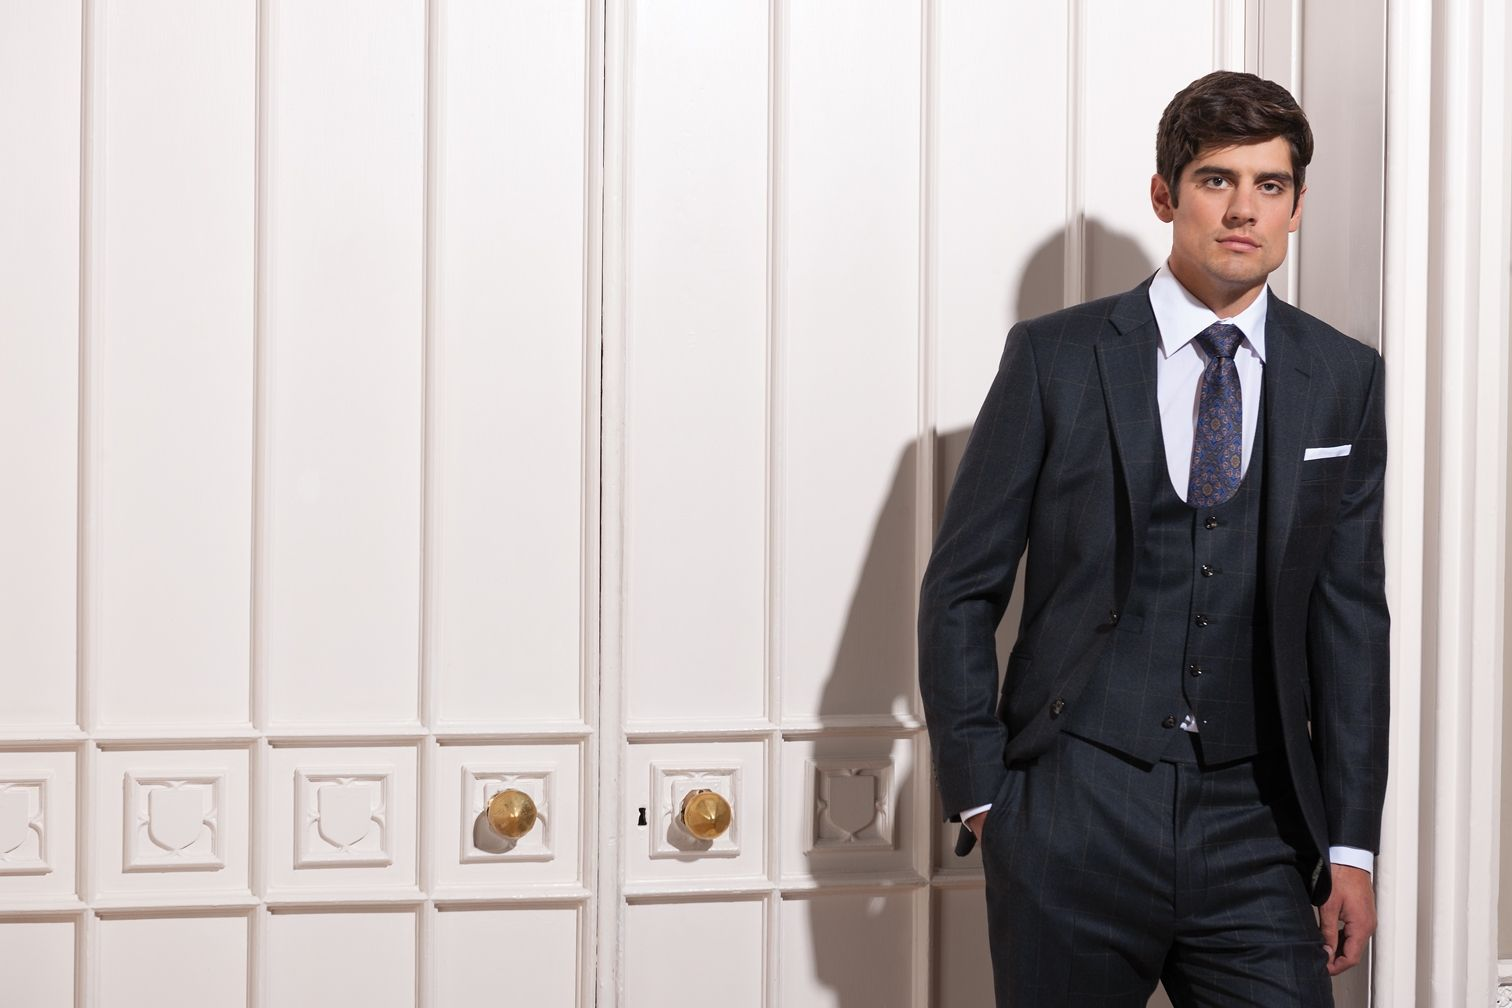 Alastair Cook England Cricket Captain Suited And Booted Wearing An Austin Reed Bespoke Suit Alastair Cook Bespoke Suit Austin Reed